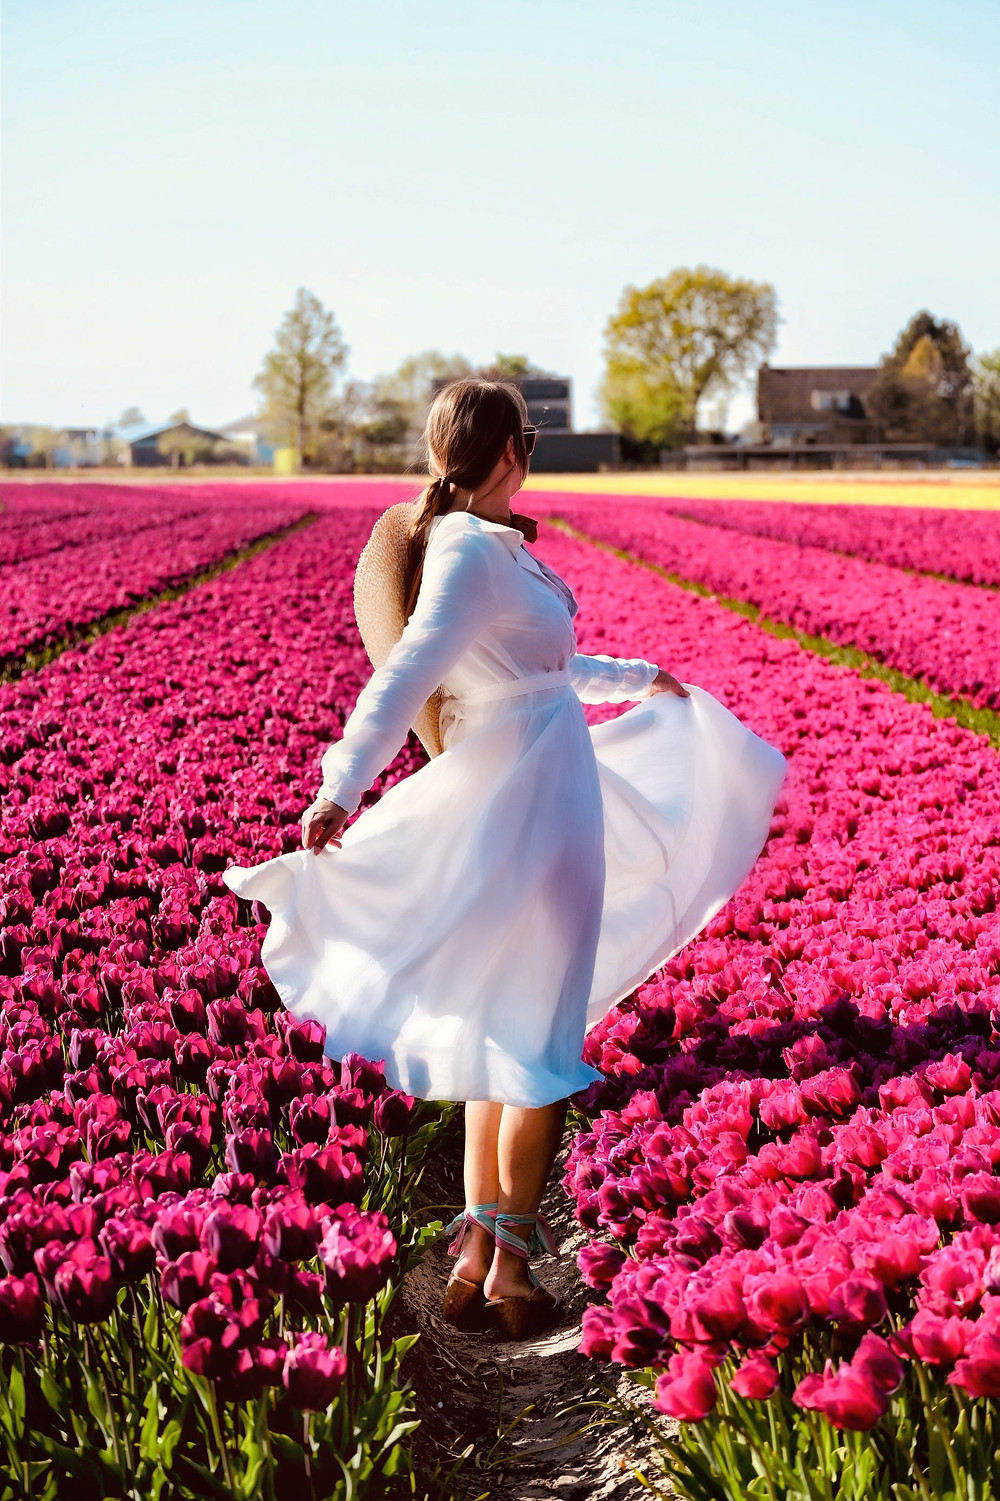 Tulip fields Voorhout, the Netherlands